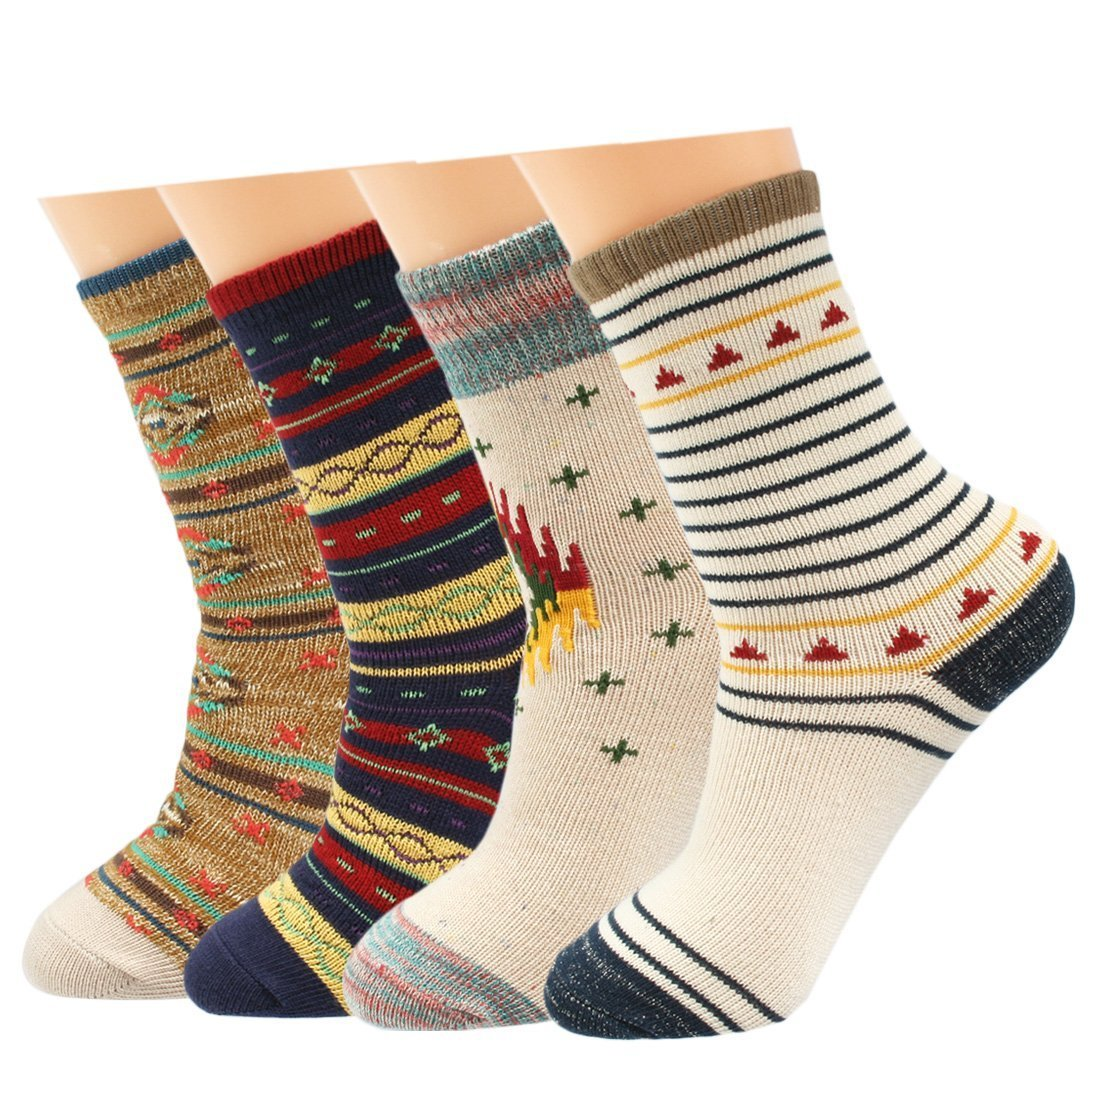 kilofly Mix & Match Colorful Cotton Crew Socks Value Pack, Set of 4 Pairs FTW376set4